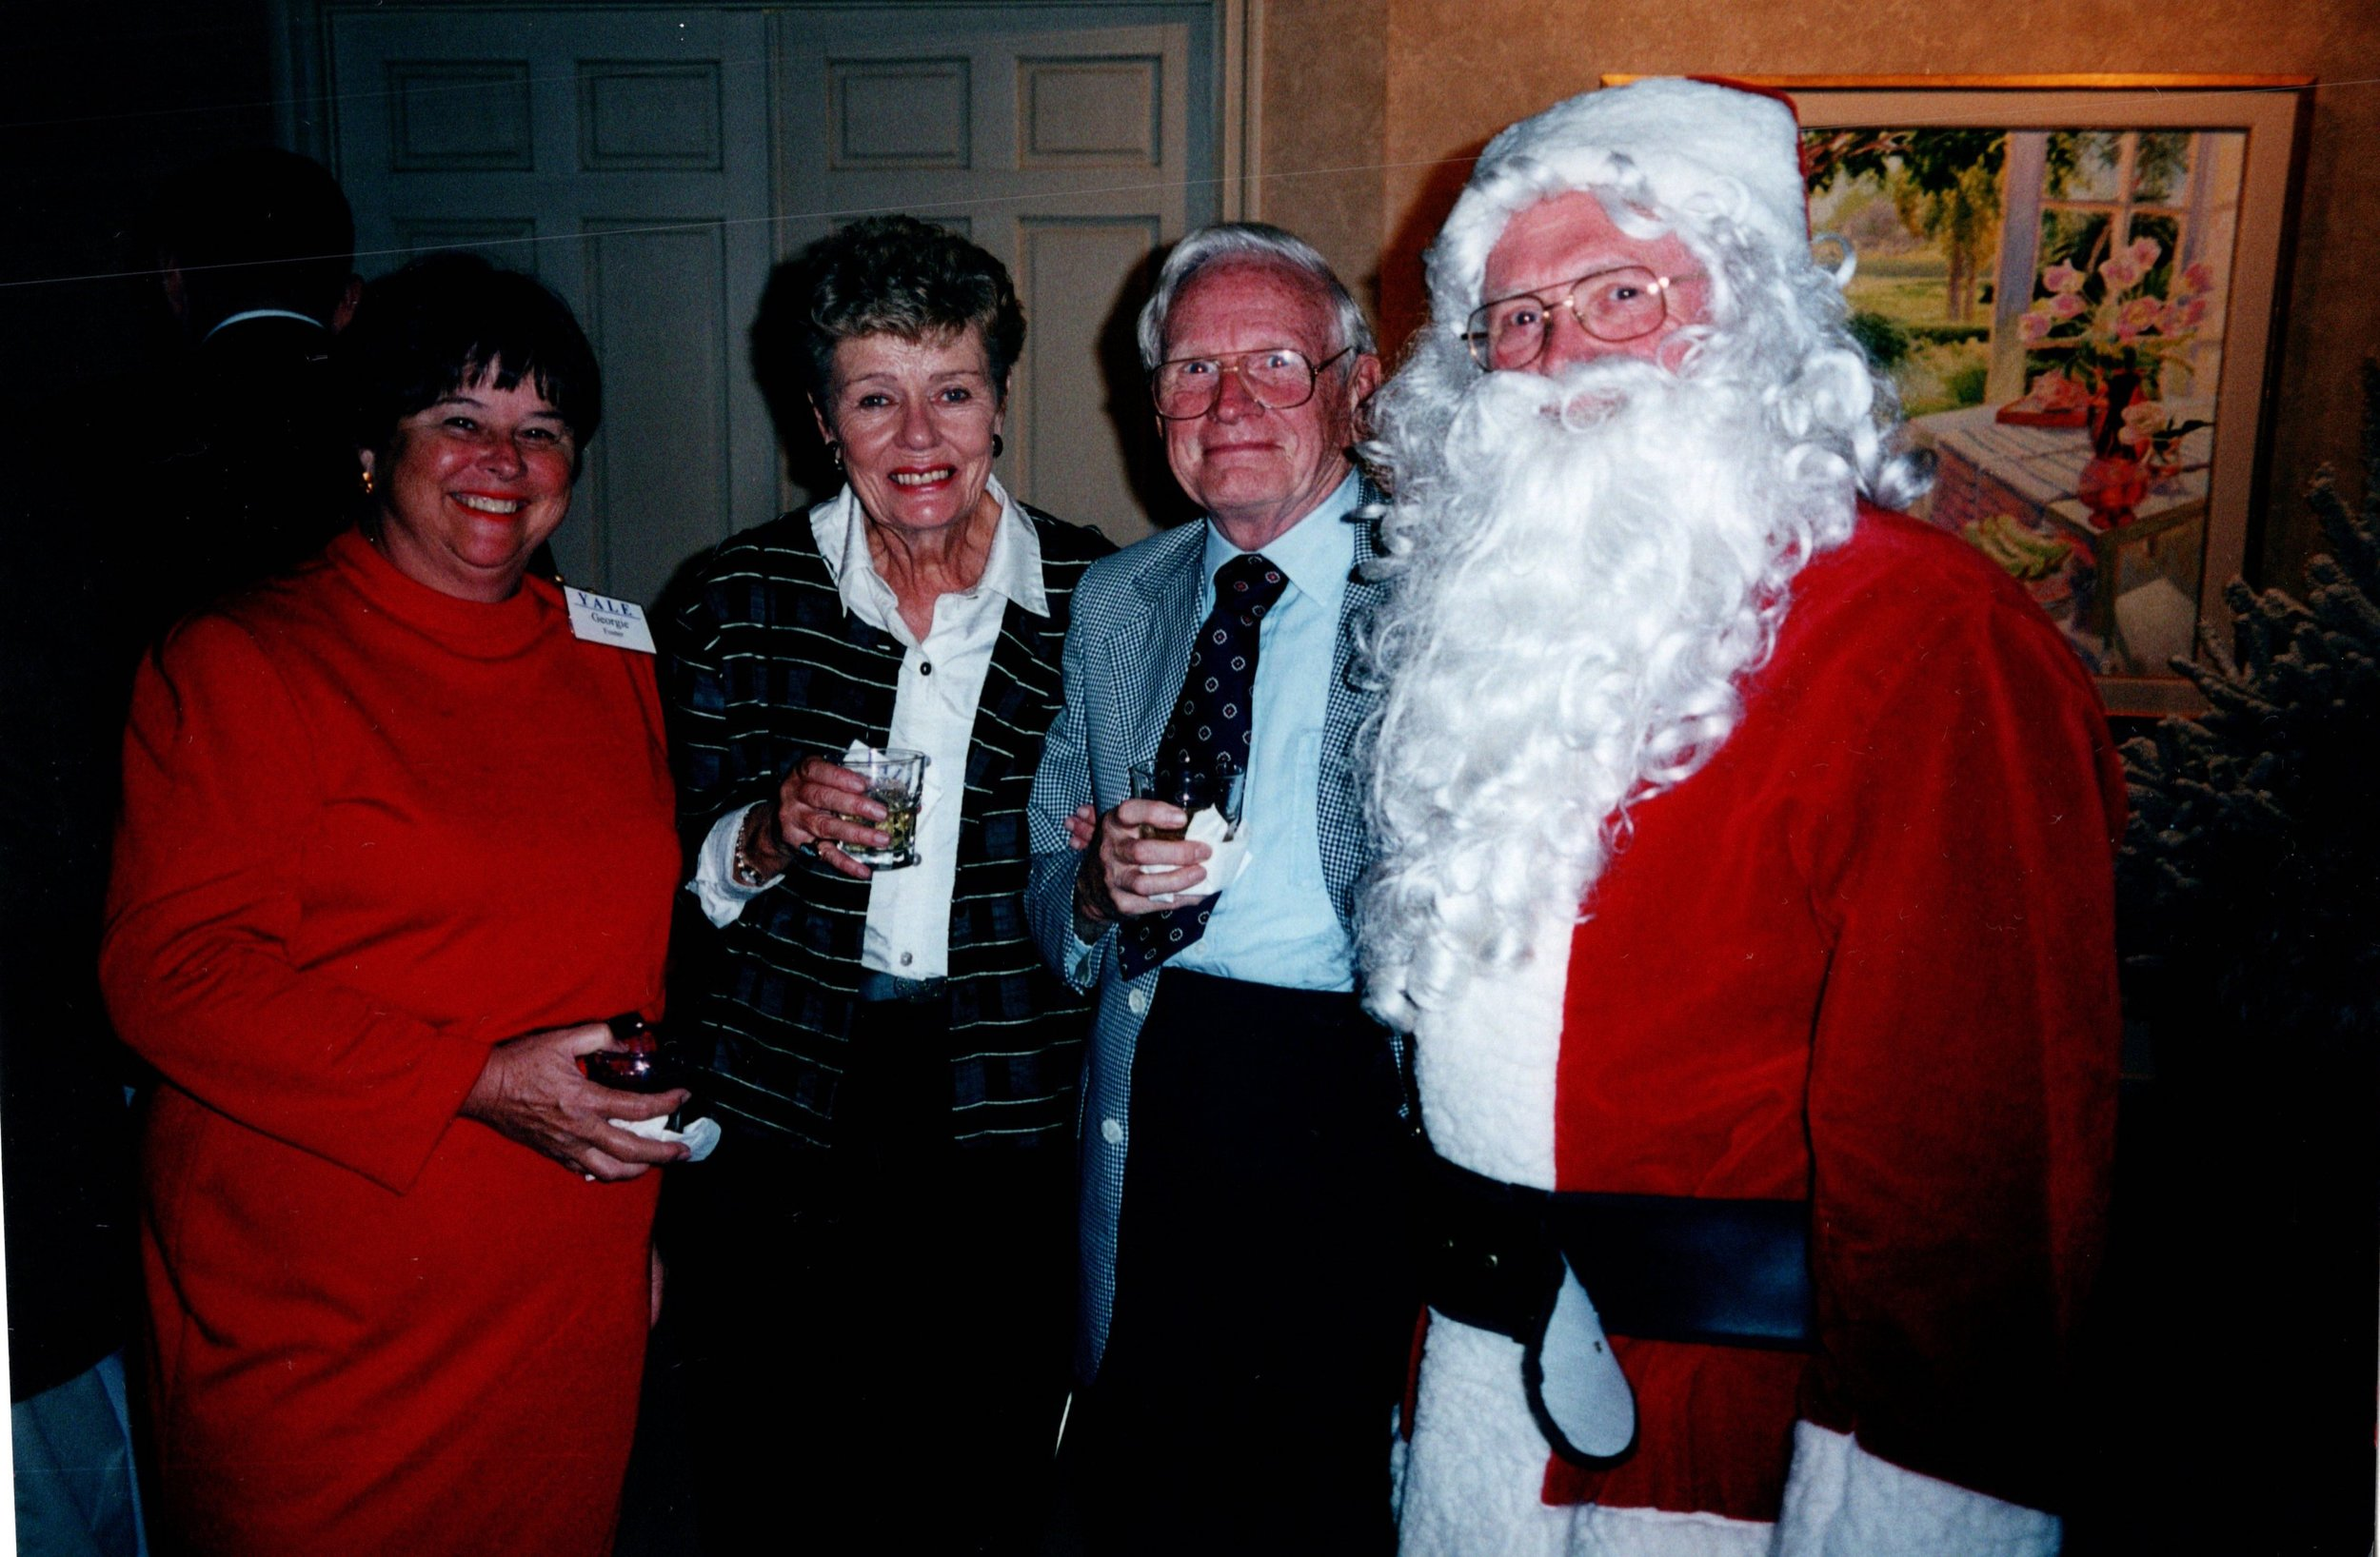 GEORGIE FOSTER, CLAIRE AND DON CREPON '54E, SANTA CLAUS